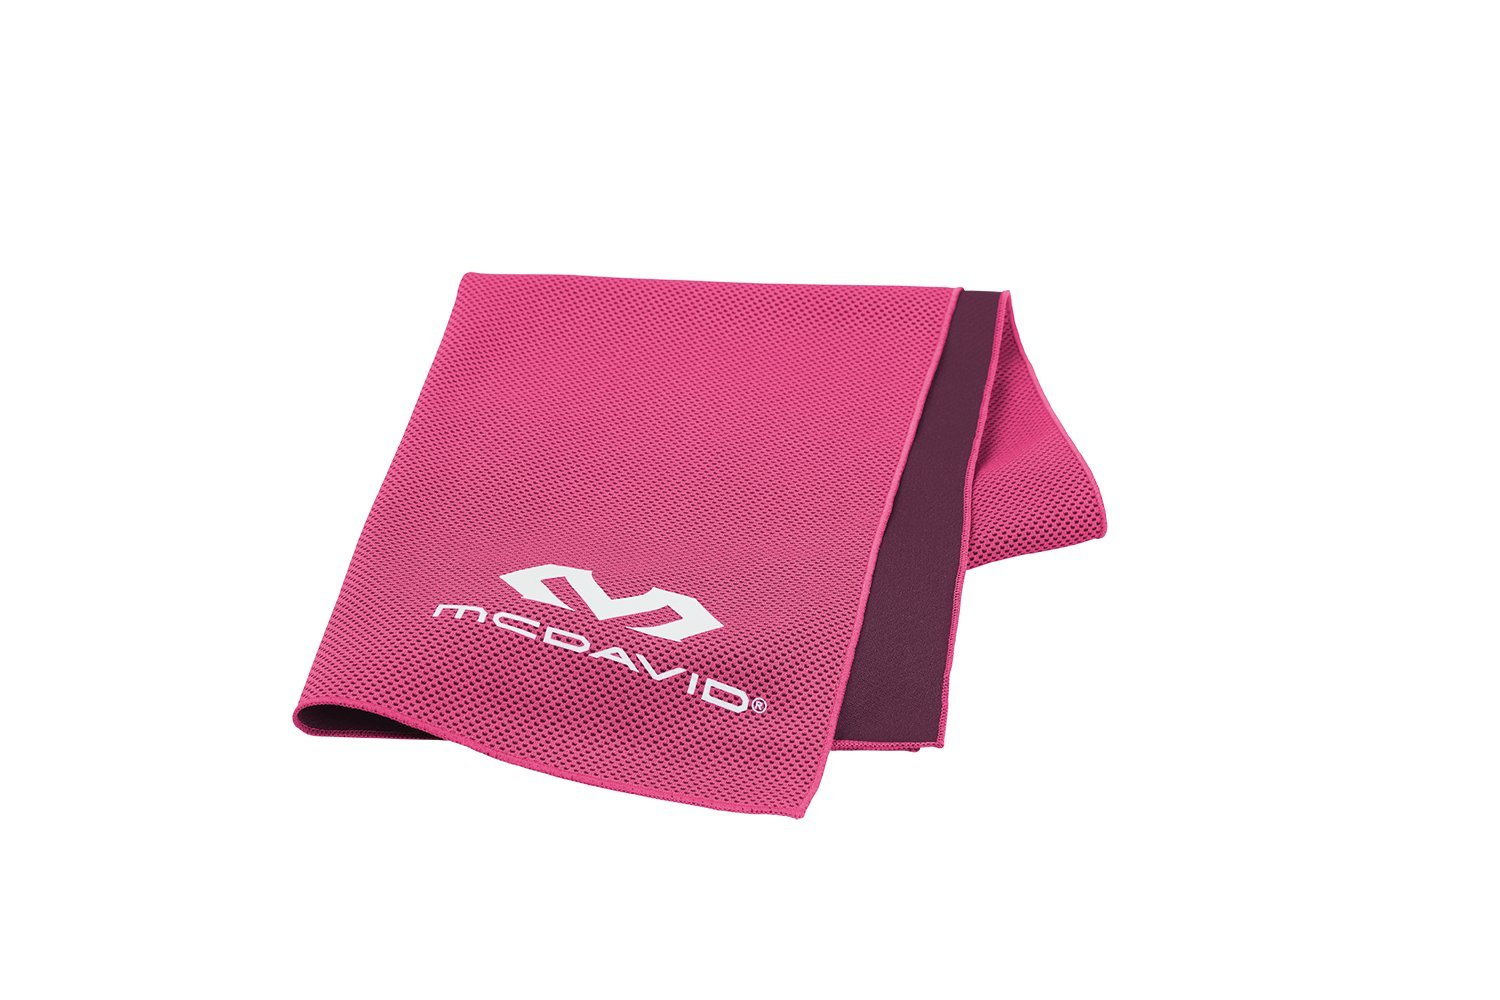 McDavid Copper Infused uCool Ultra Cooling Towel